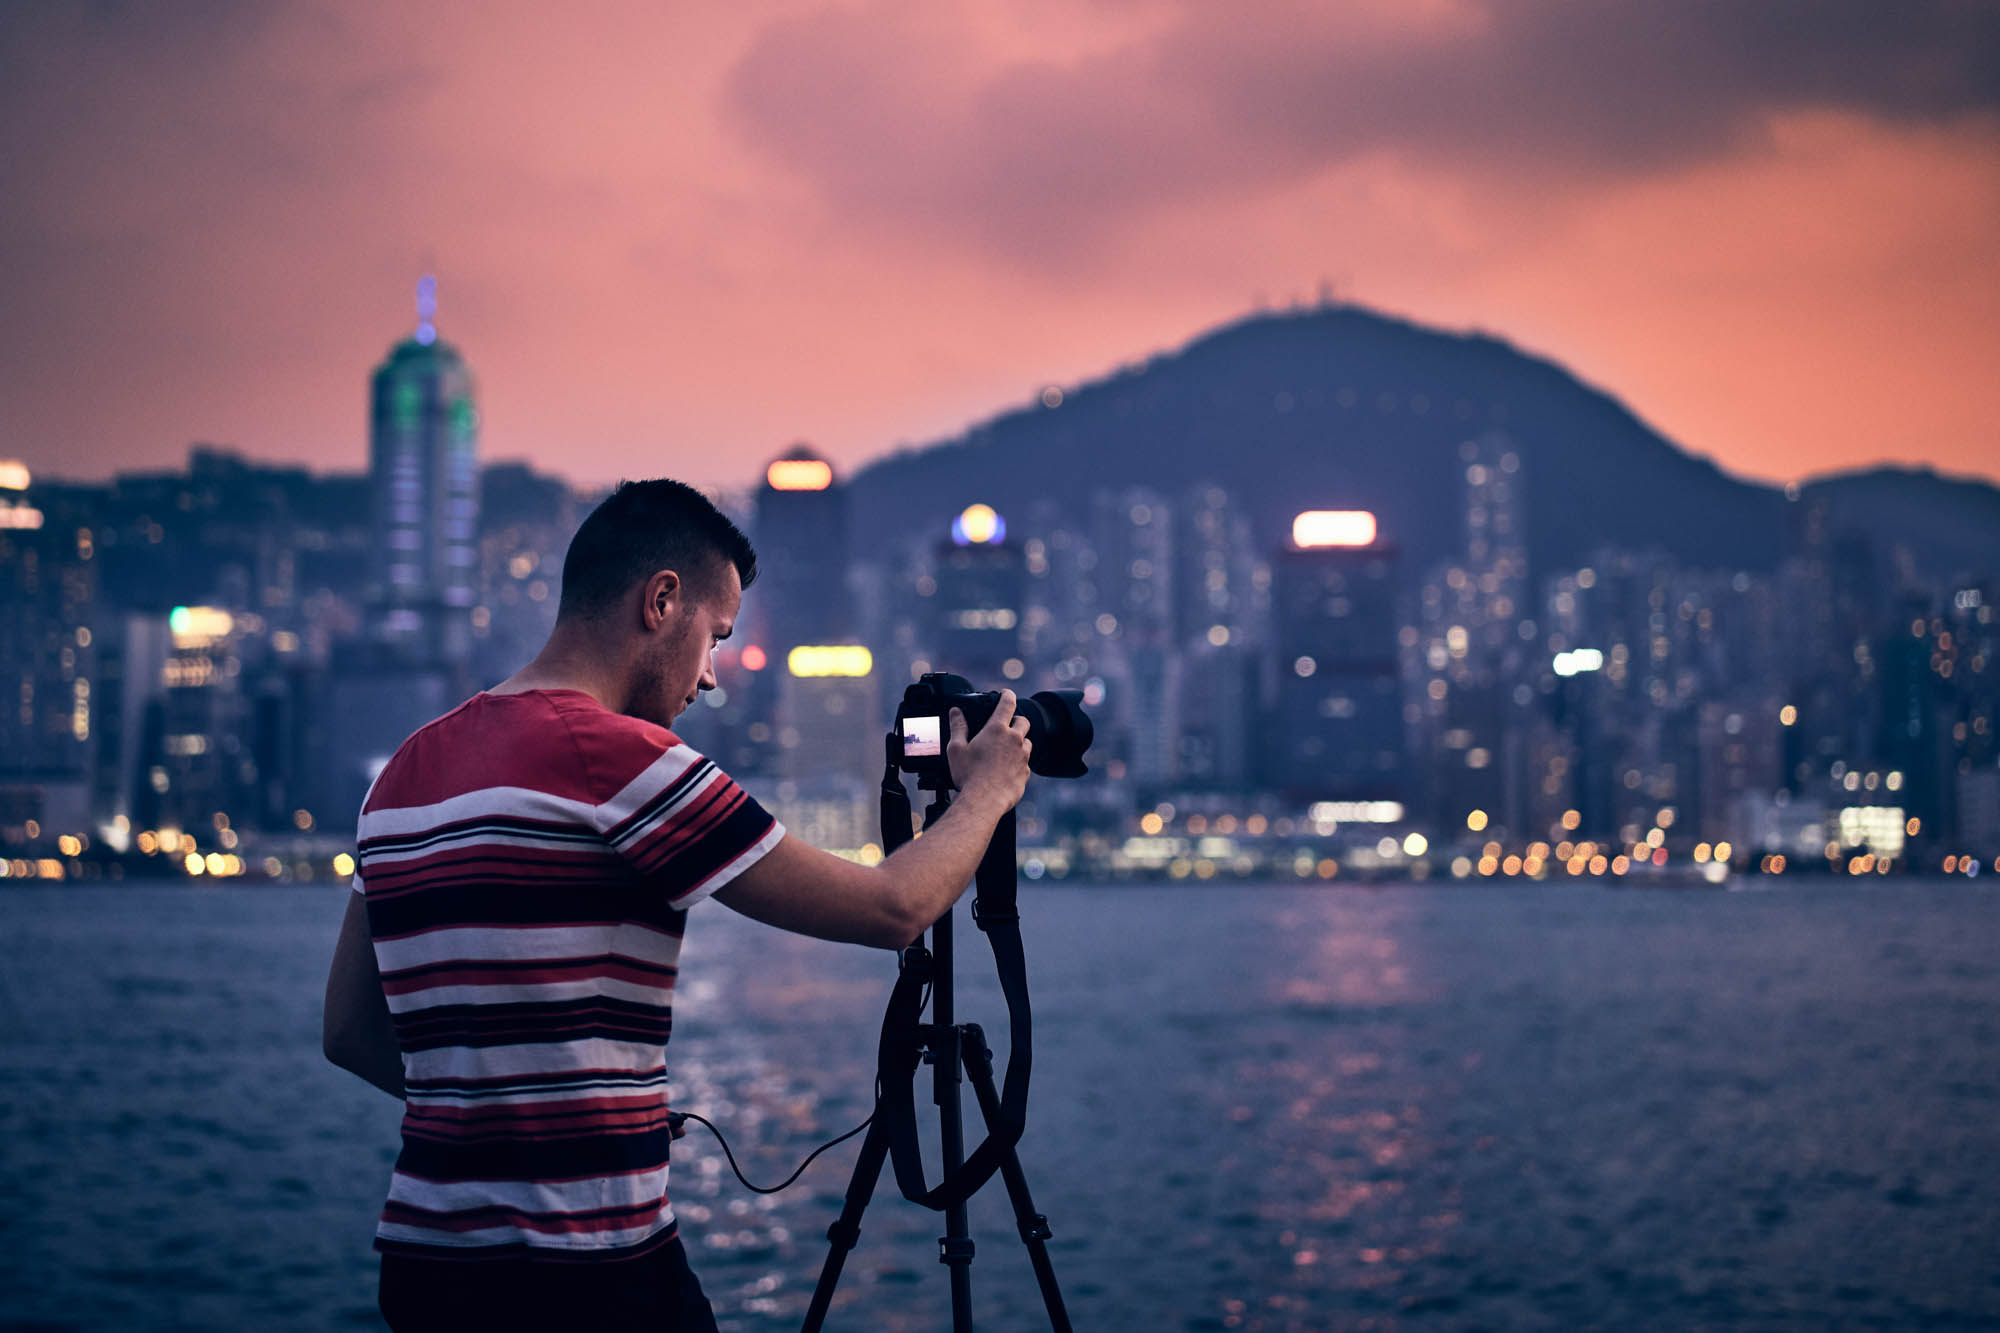 Young photographer (traveler) with tripod photographing urban skyline at sunset, Hong Kong.